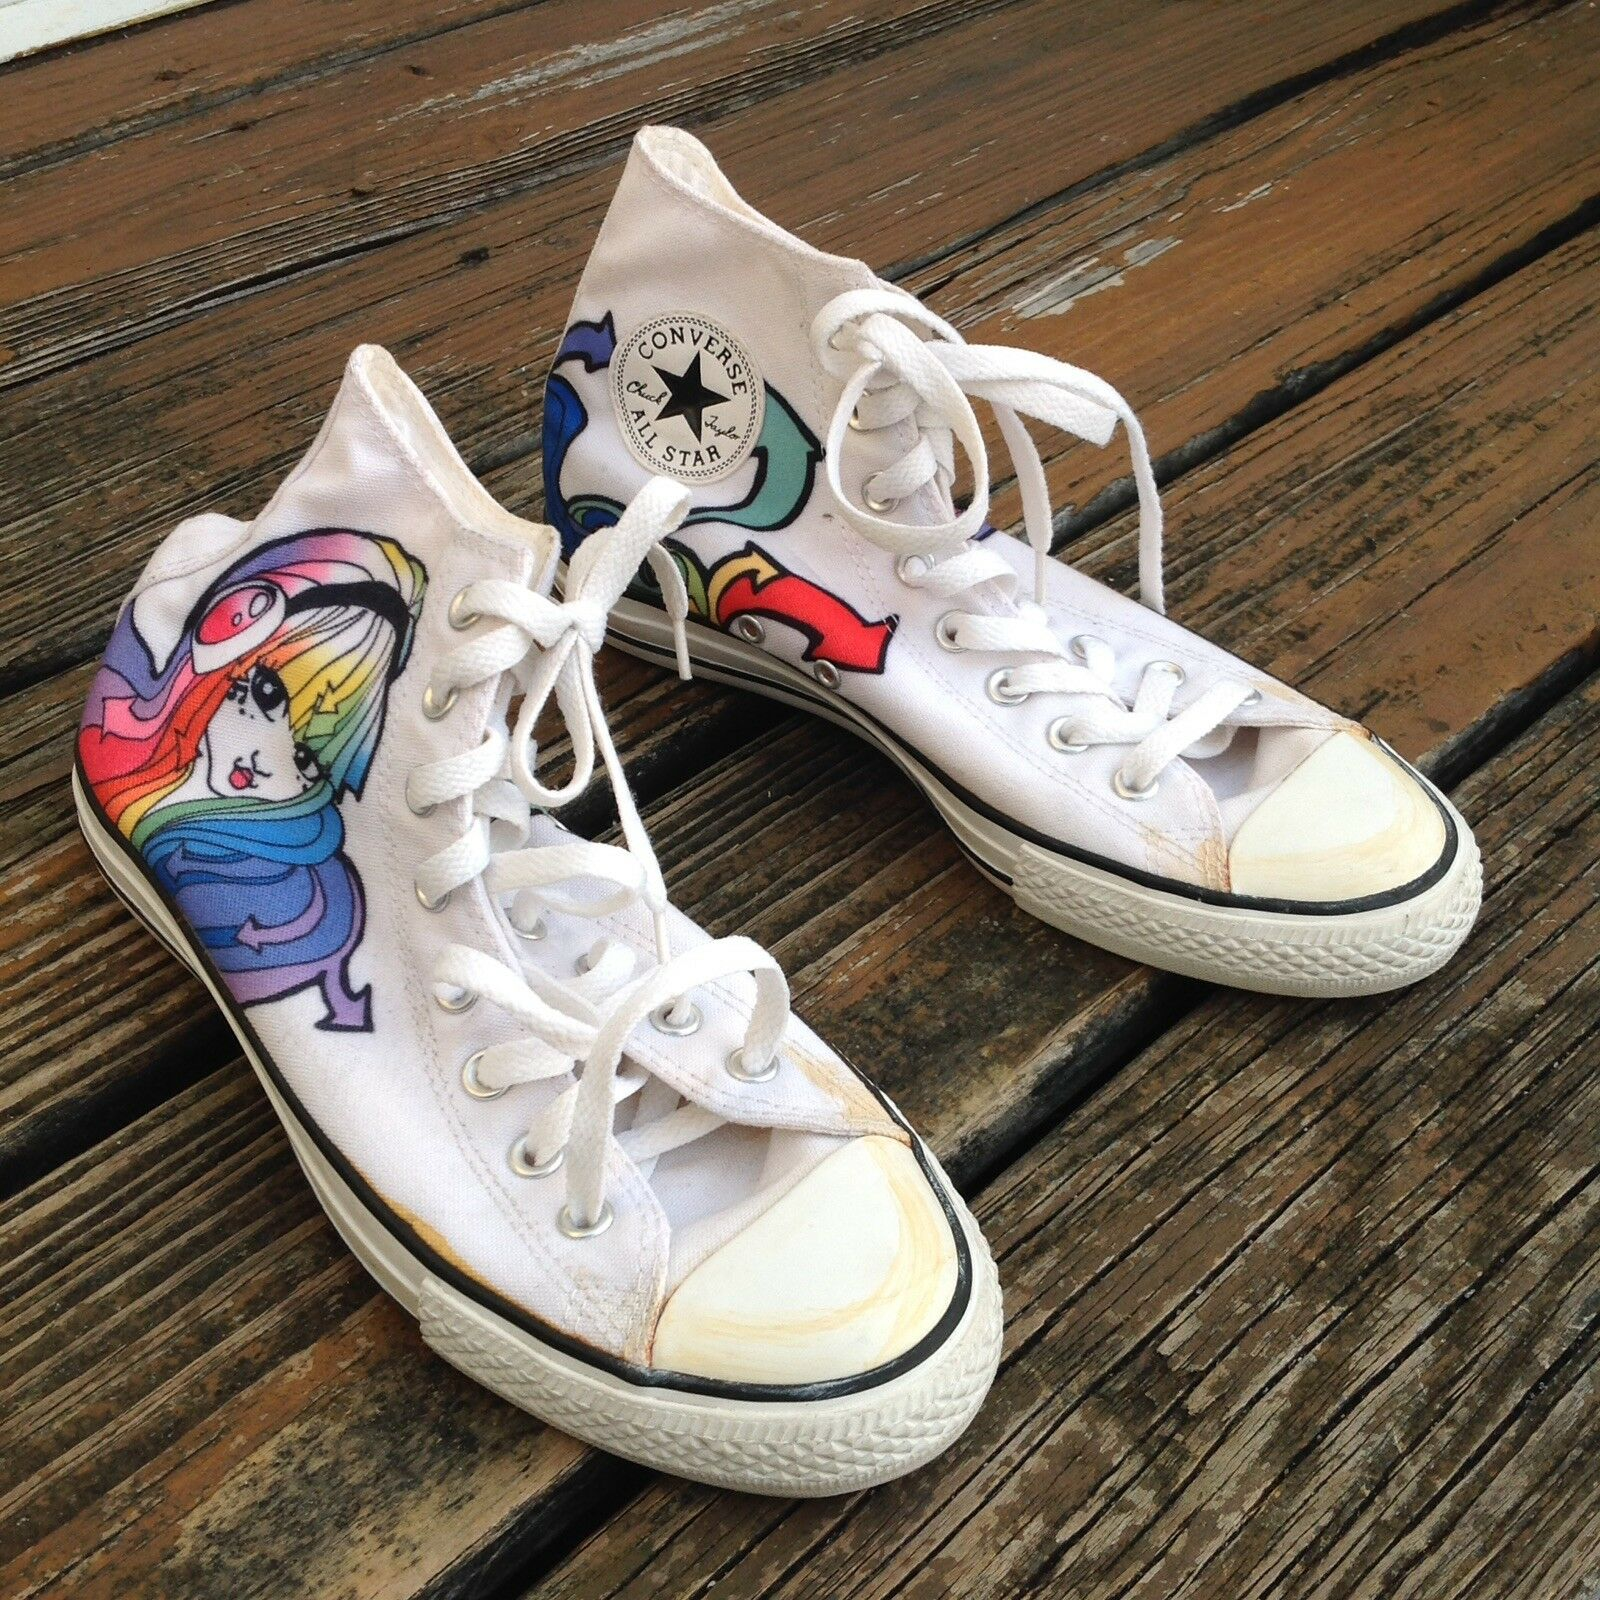 Converse All Star Hi Top Rainbow Anime Sneakers Mens 8 Womens 10 EUR 41.5 shoes